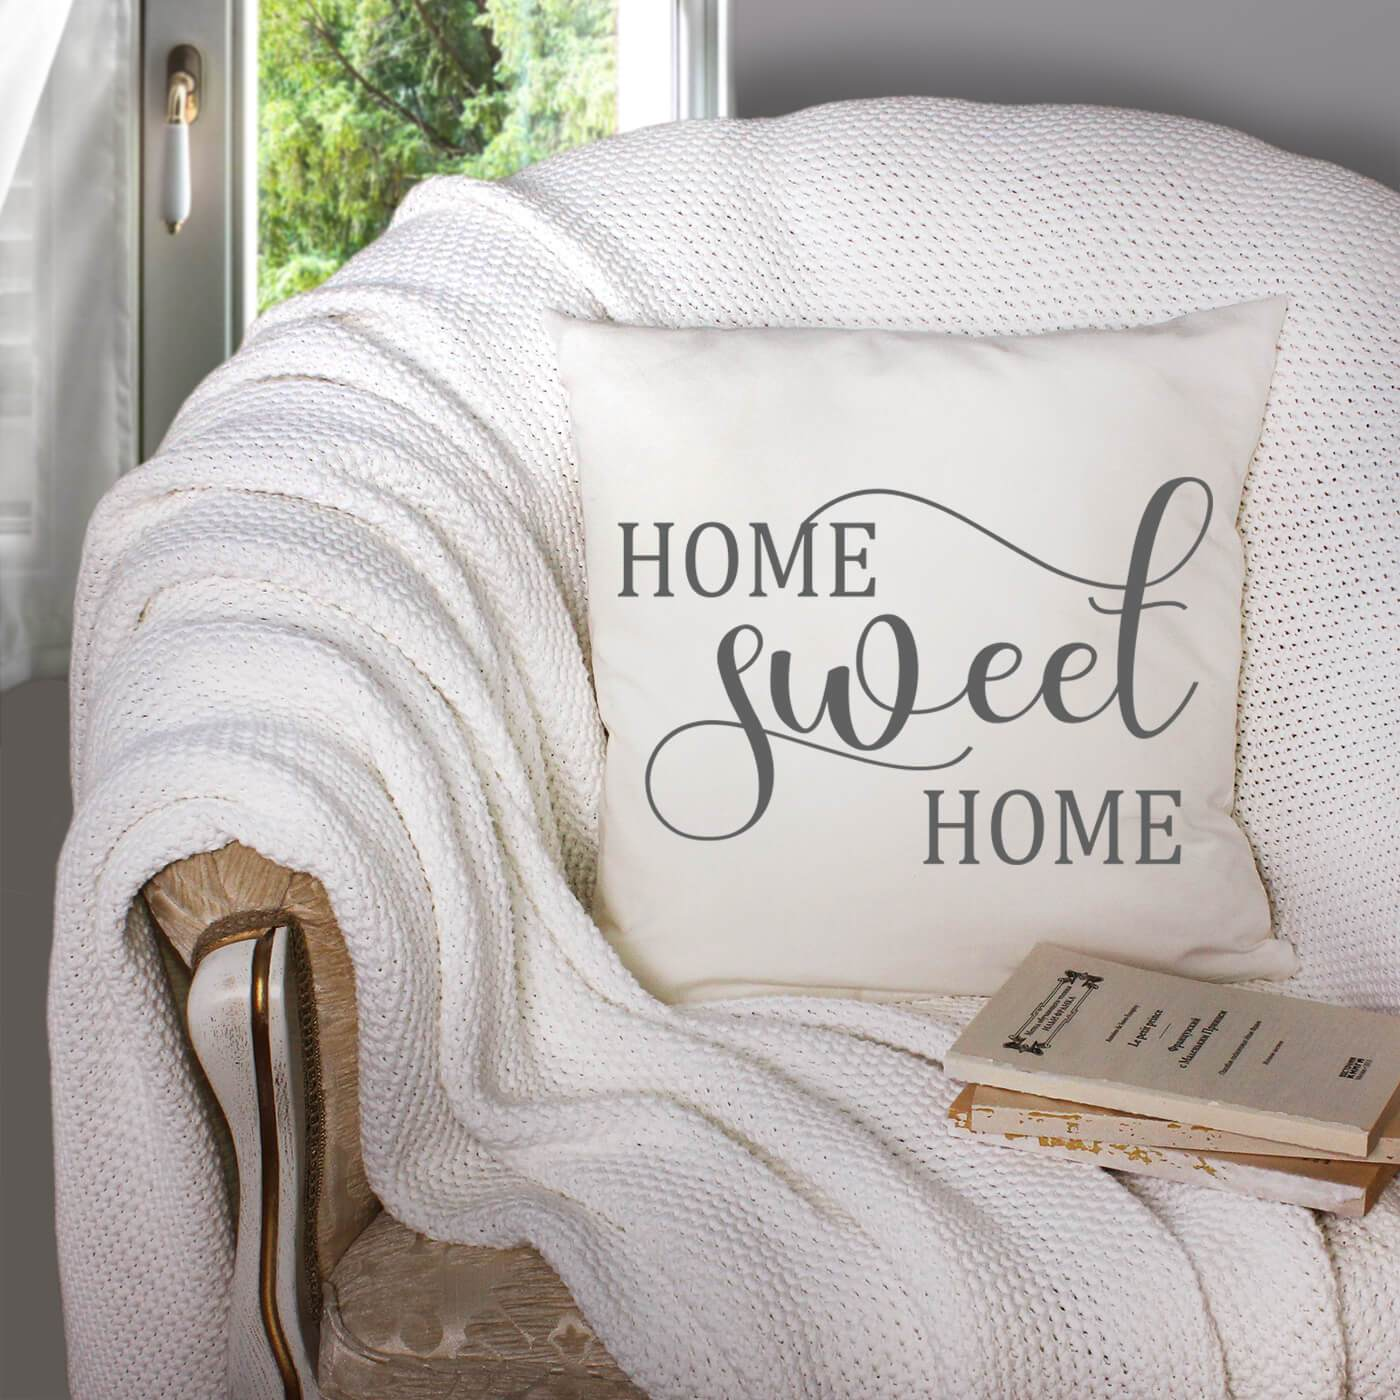 Home Sweet Home - Pillow